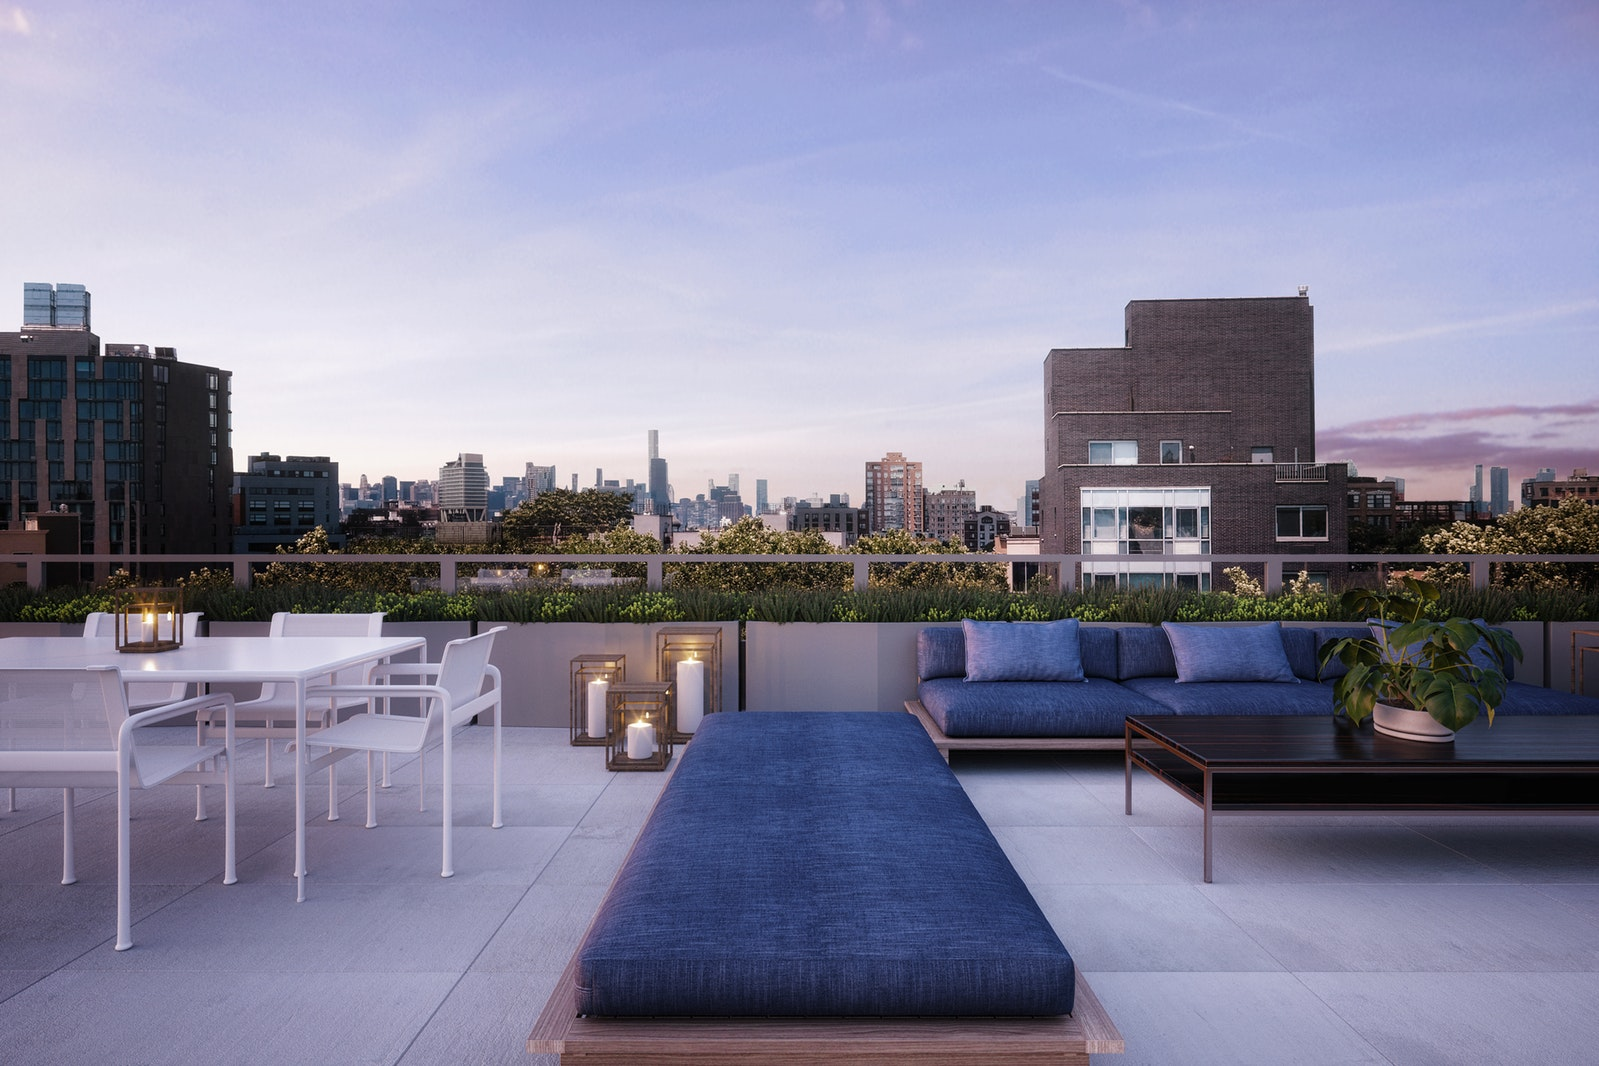 21 Powers Street Phc, Williamsburg, Brooklyn, NY, 11217, $995,000, Property For Sale, Halstead Real Estate, Photo 7